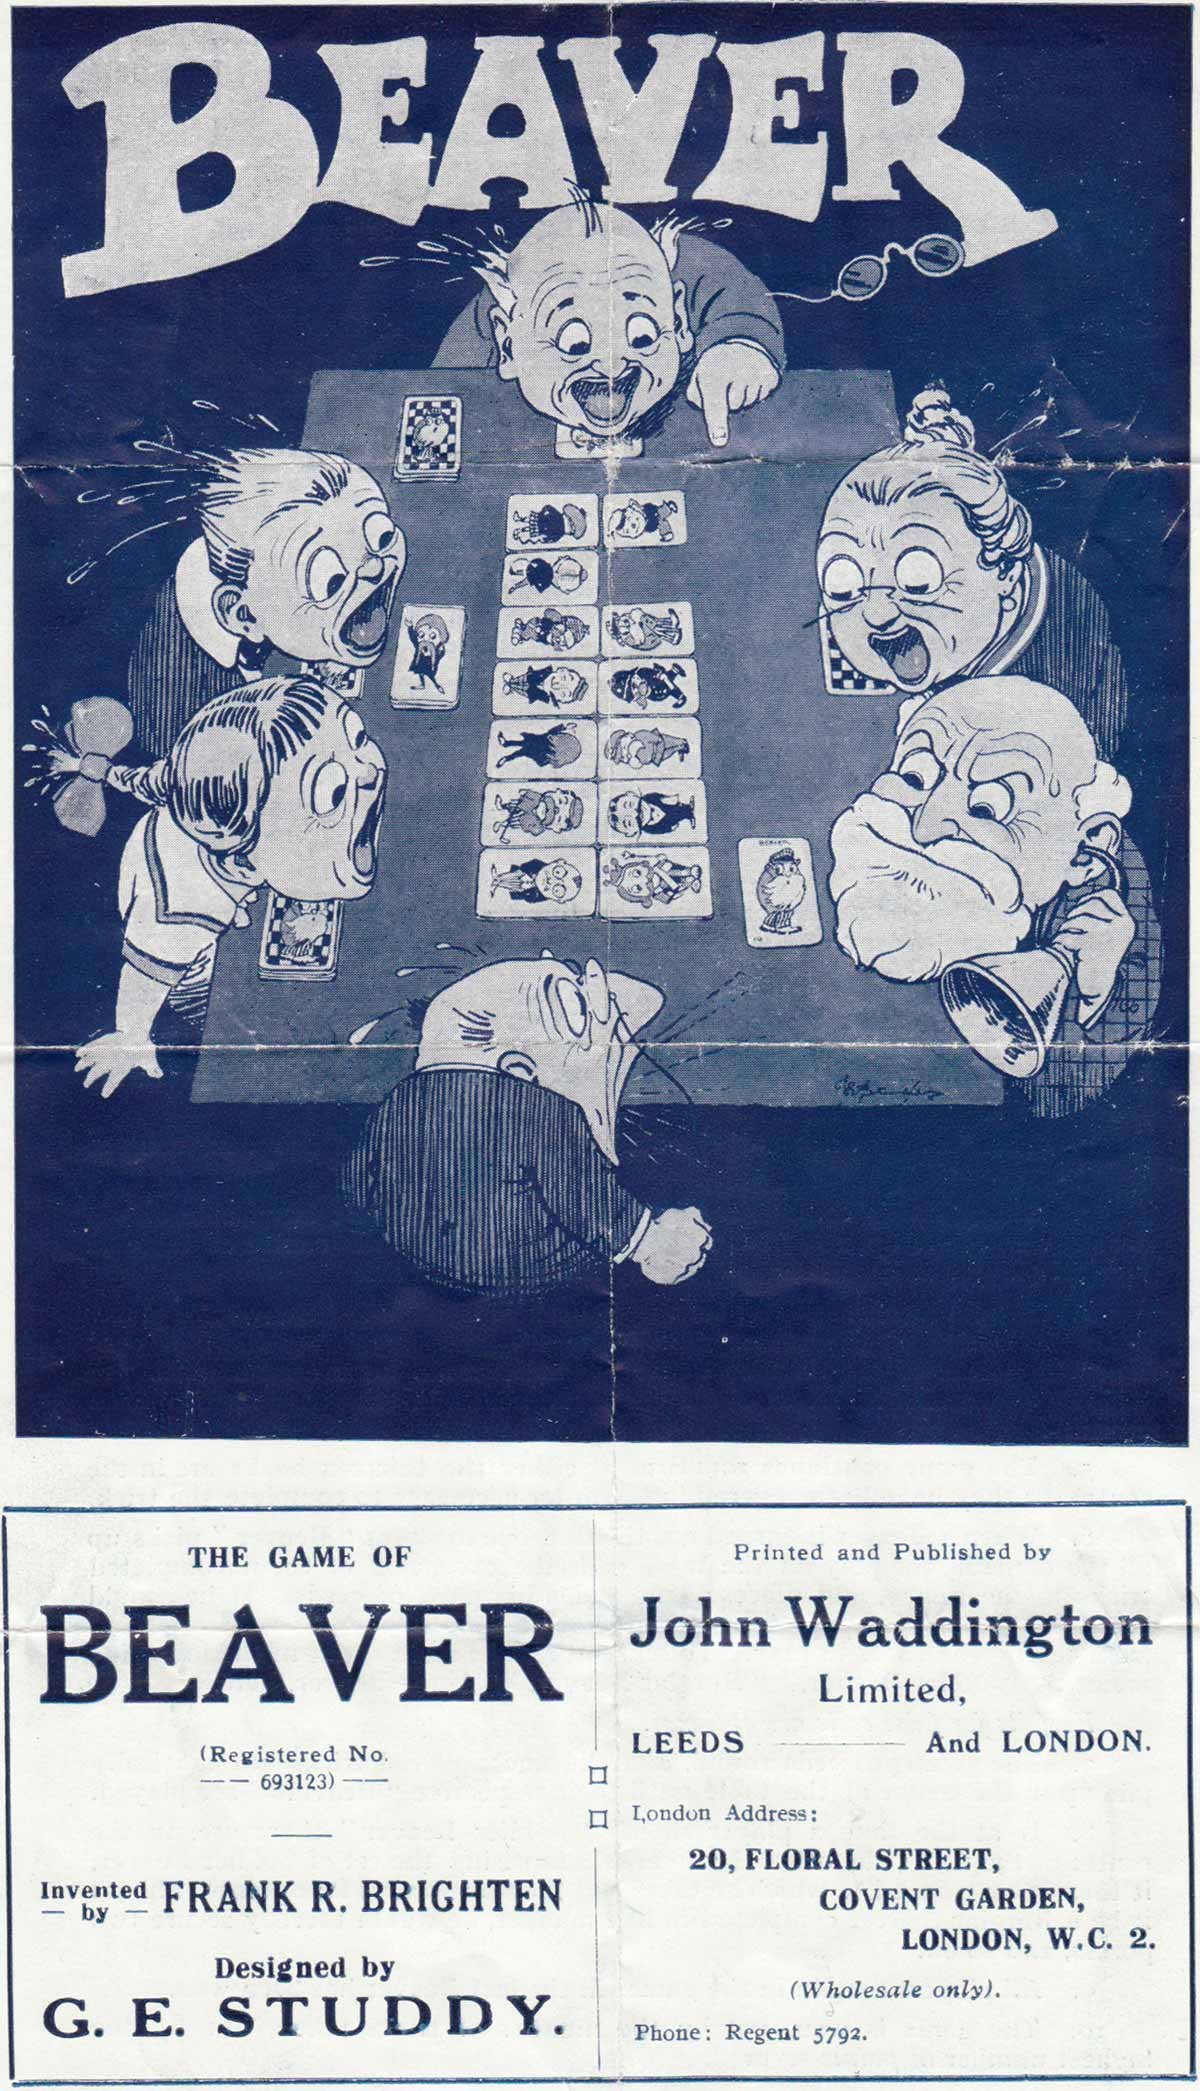 the Game of Beaver published by John Waddington Ltd in 1927